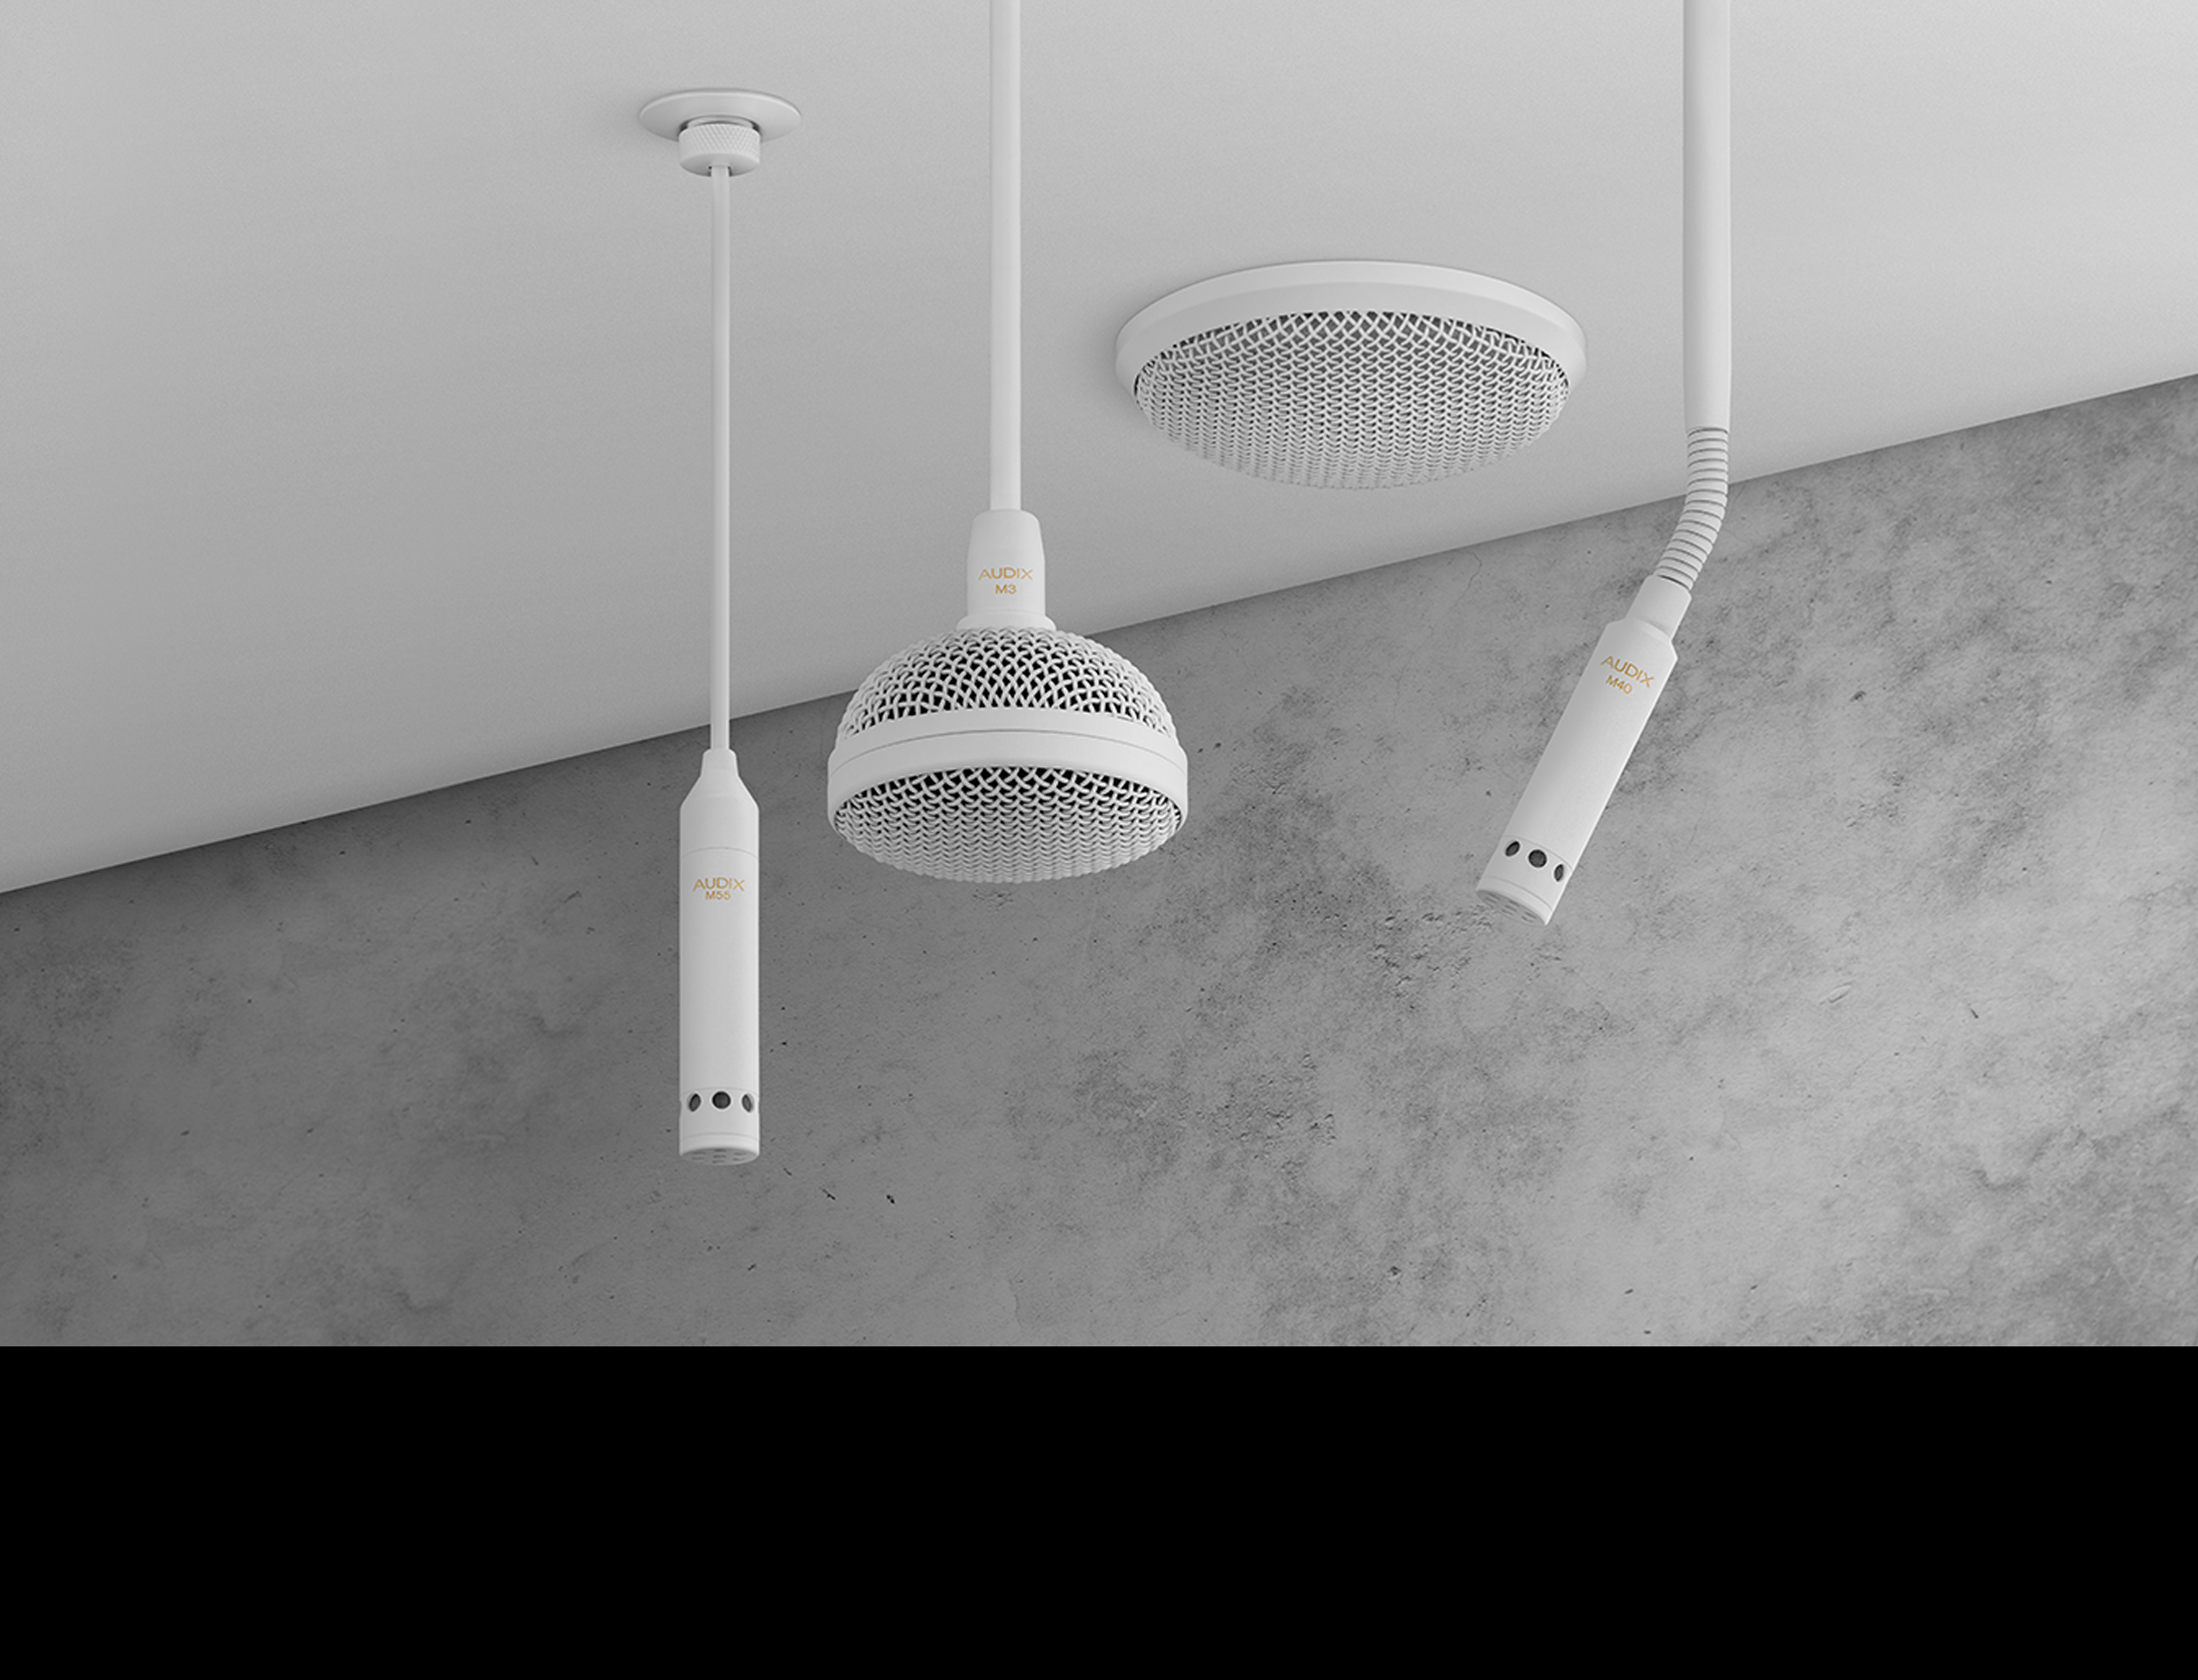 Audix Install Microphones - The Right Choice For Ceiling Mics